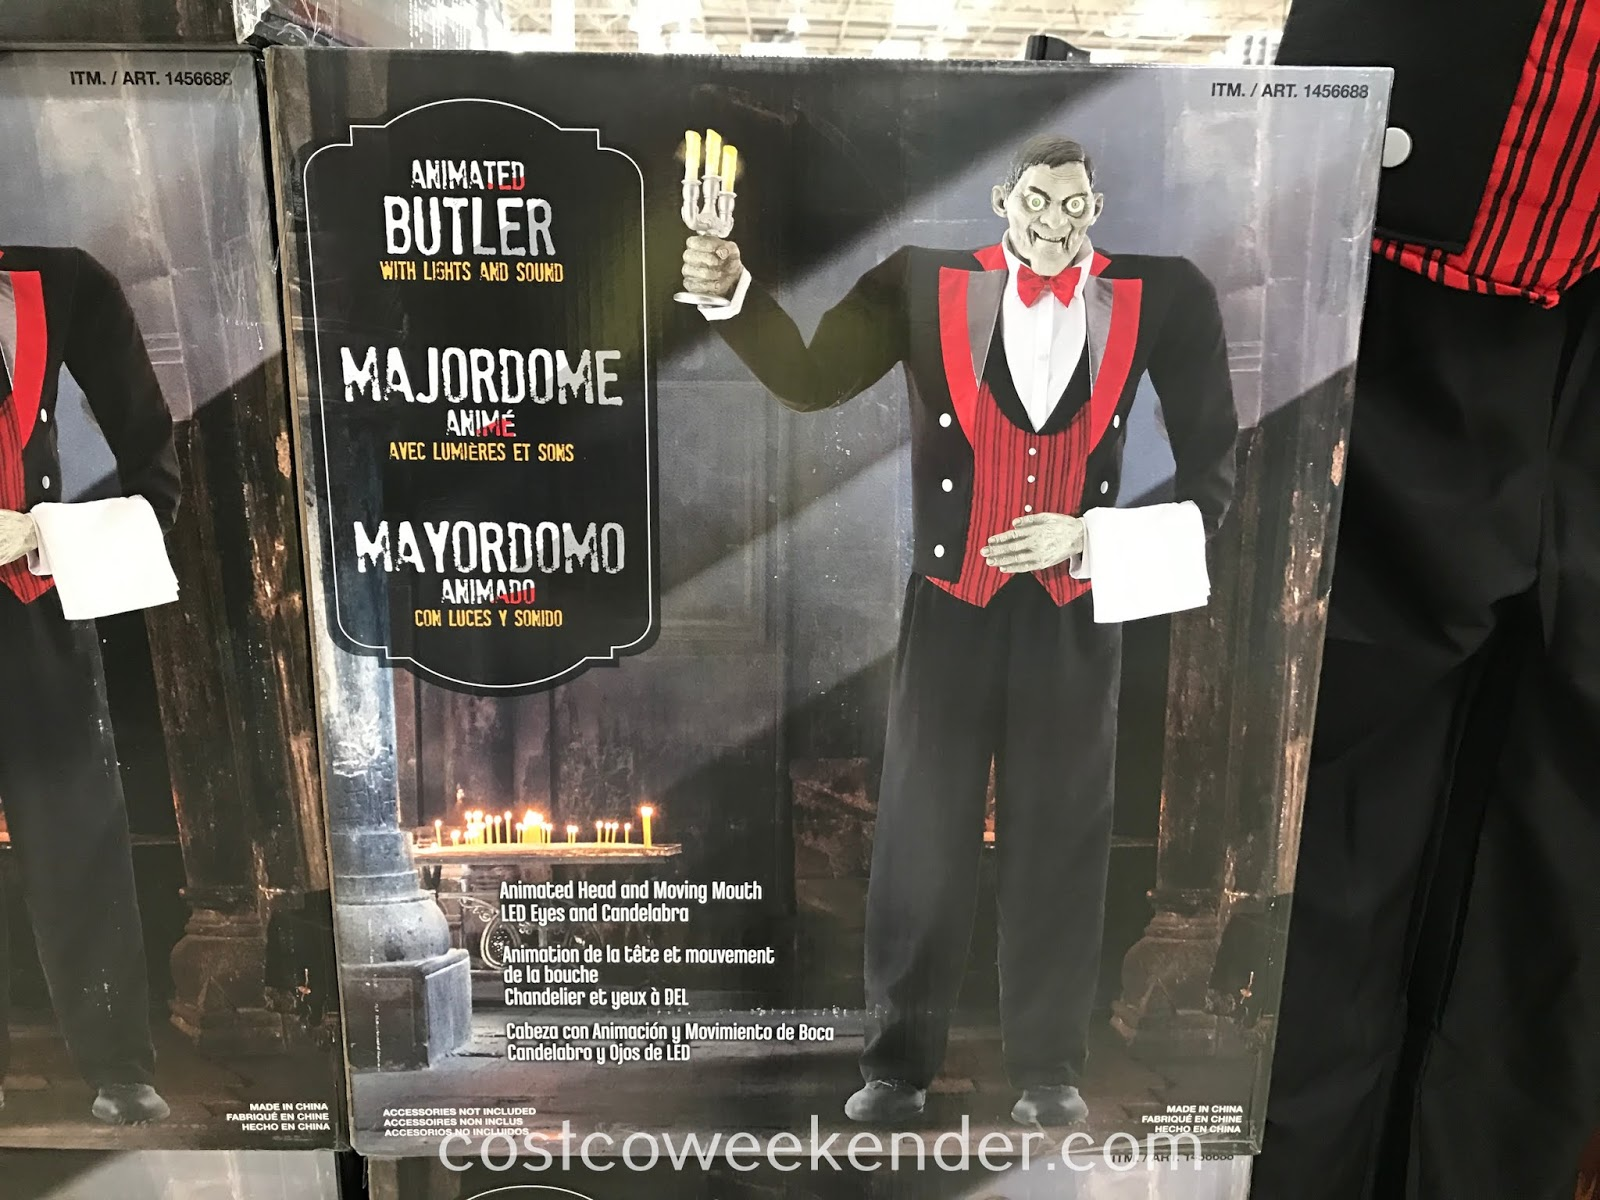 Costco 1456688 - Turn your home into a haunted mansion with the Animated Butler with Lights and Sound